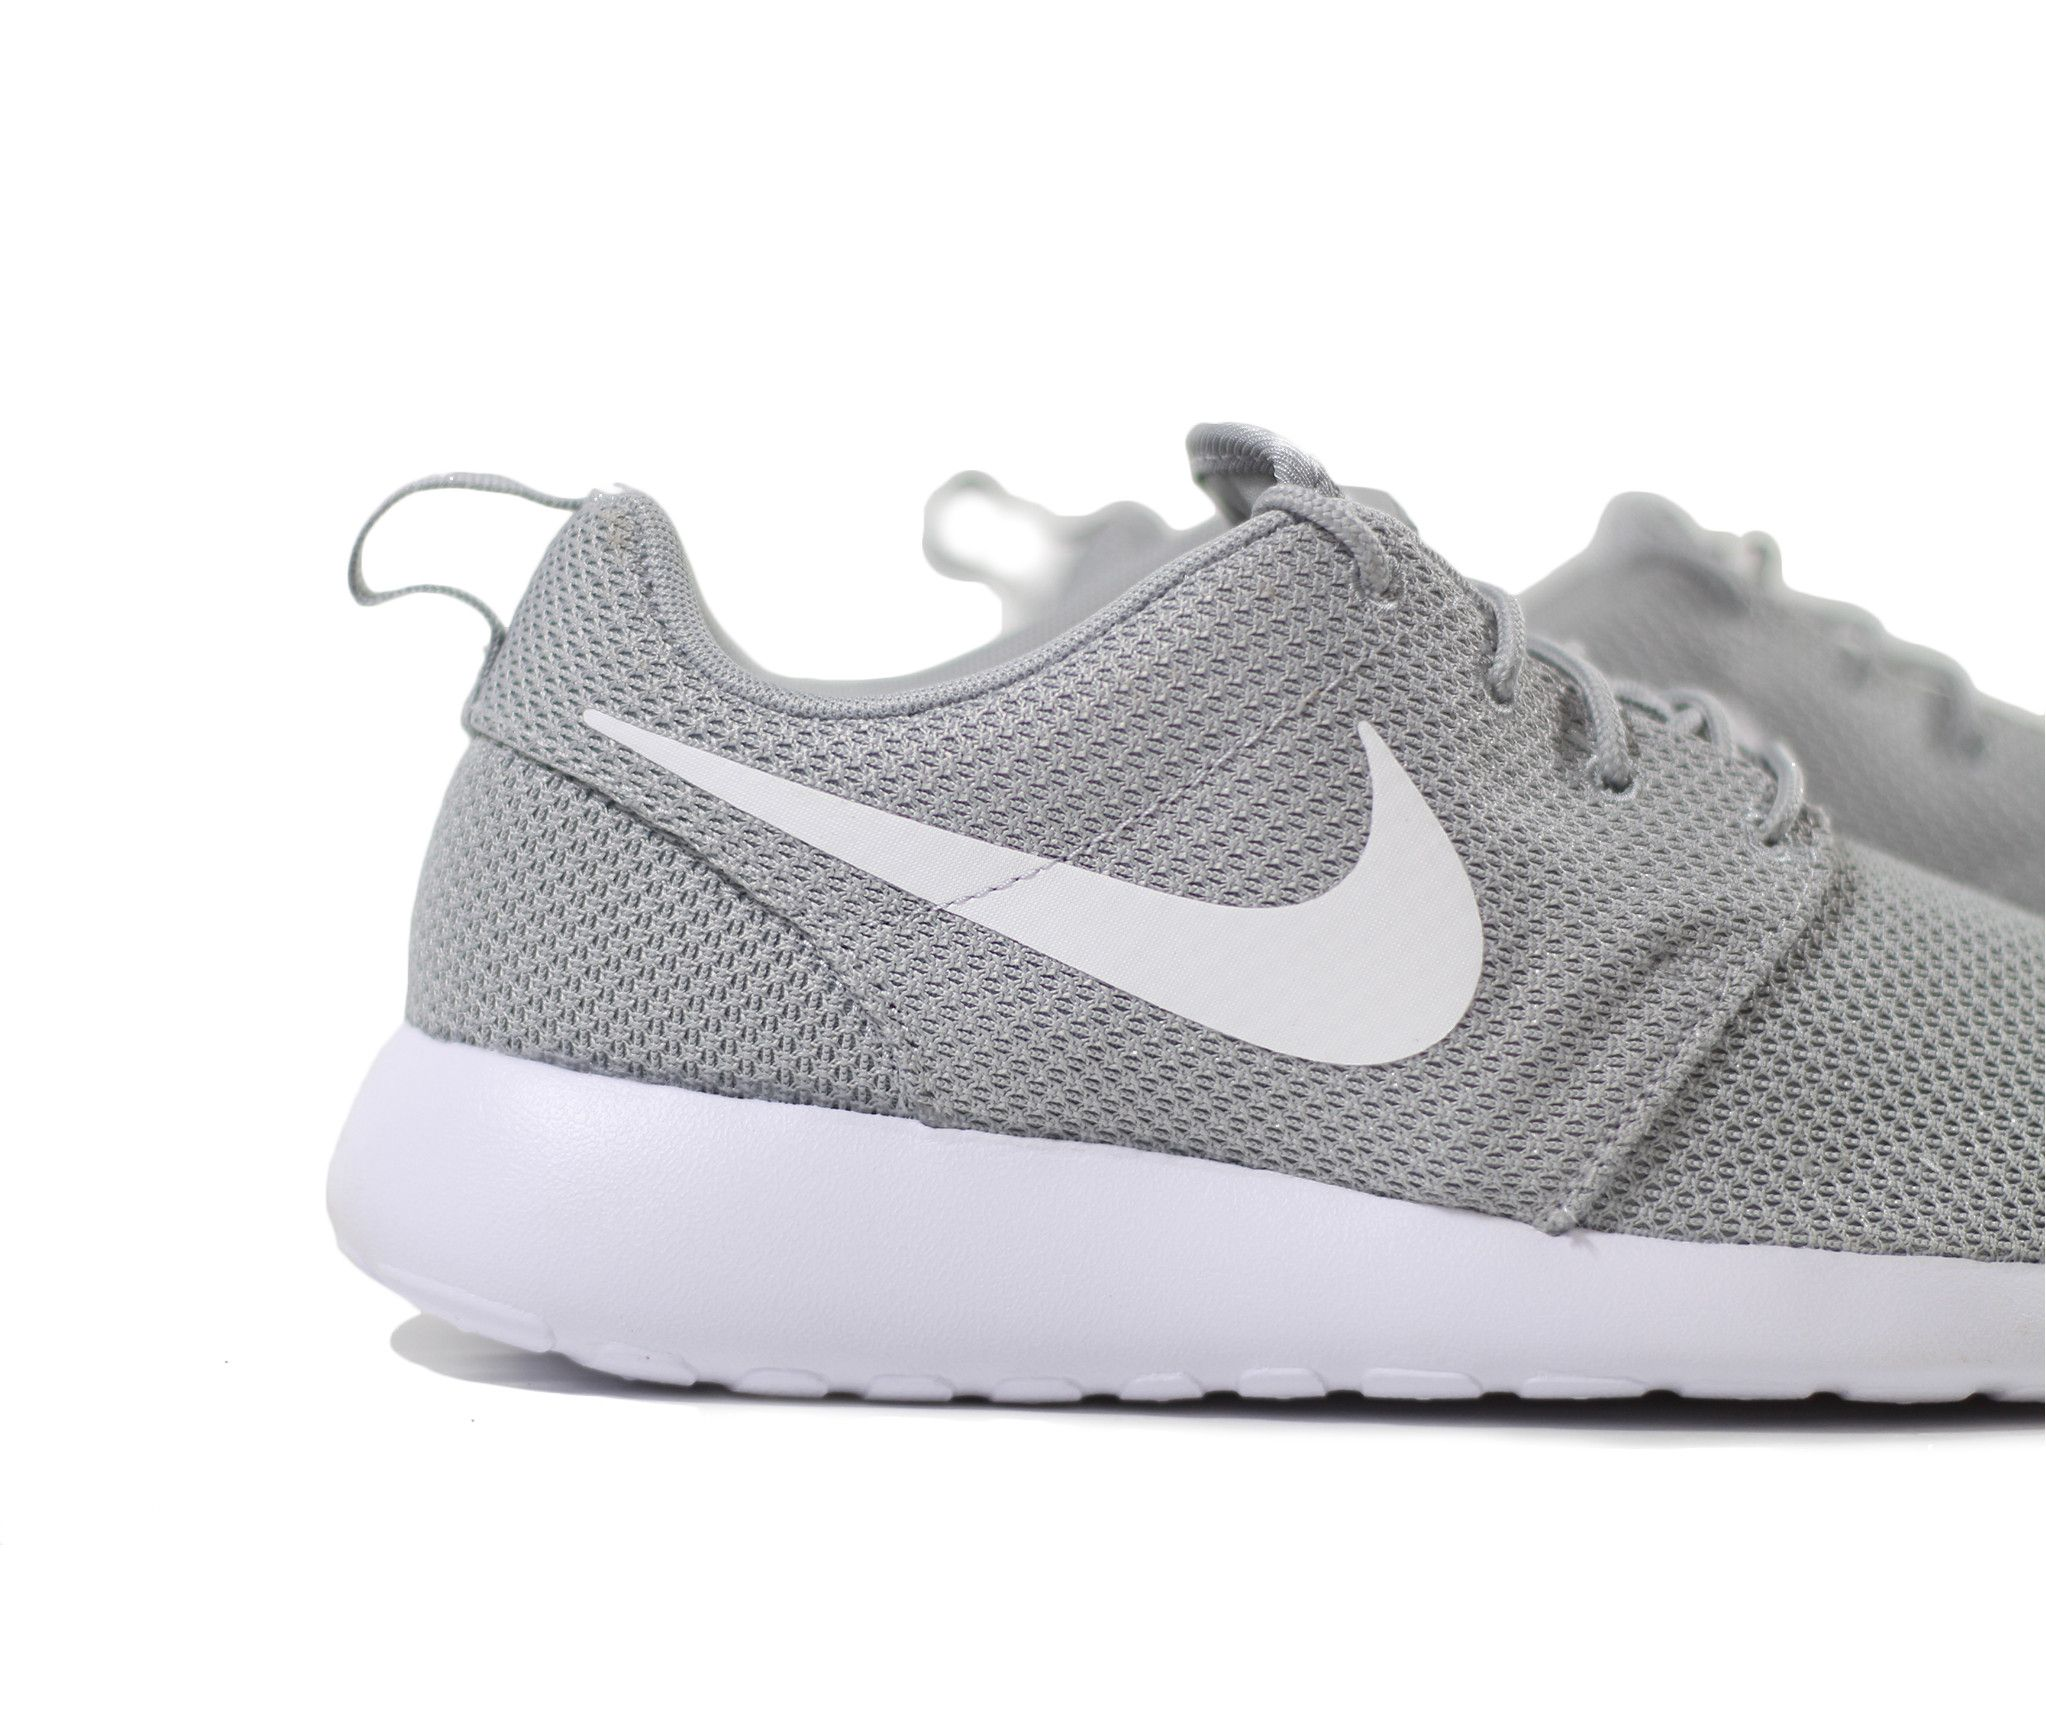 Womens Nike Roshe Run Shoes Gray/PinkShoes_a2619